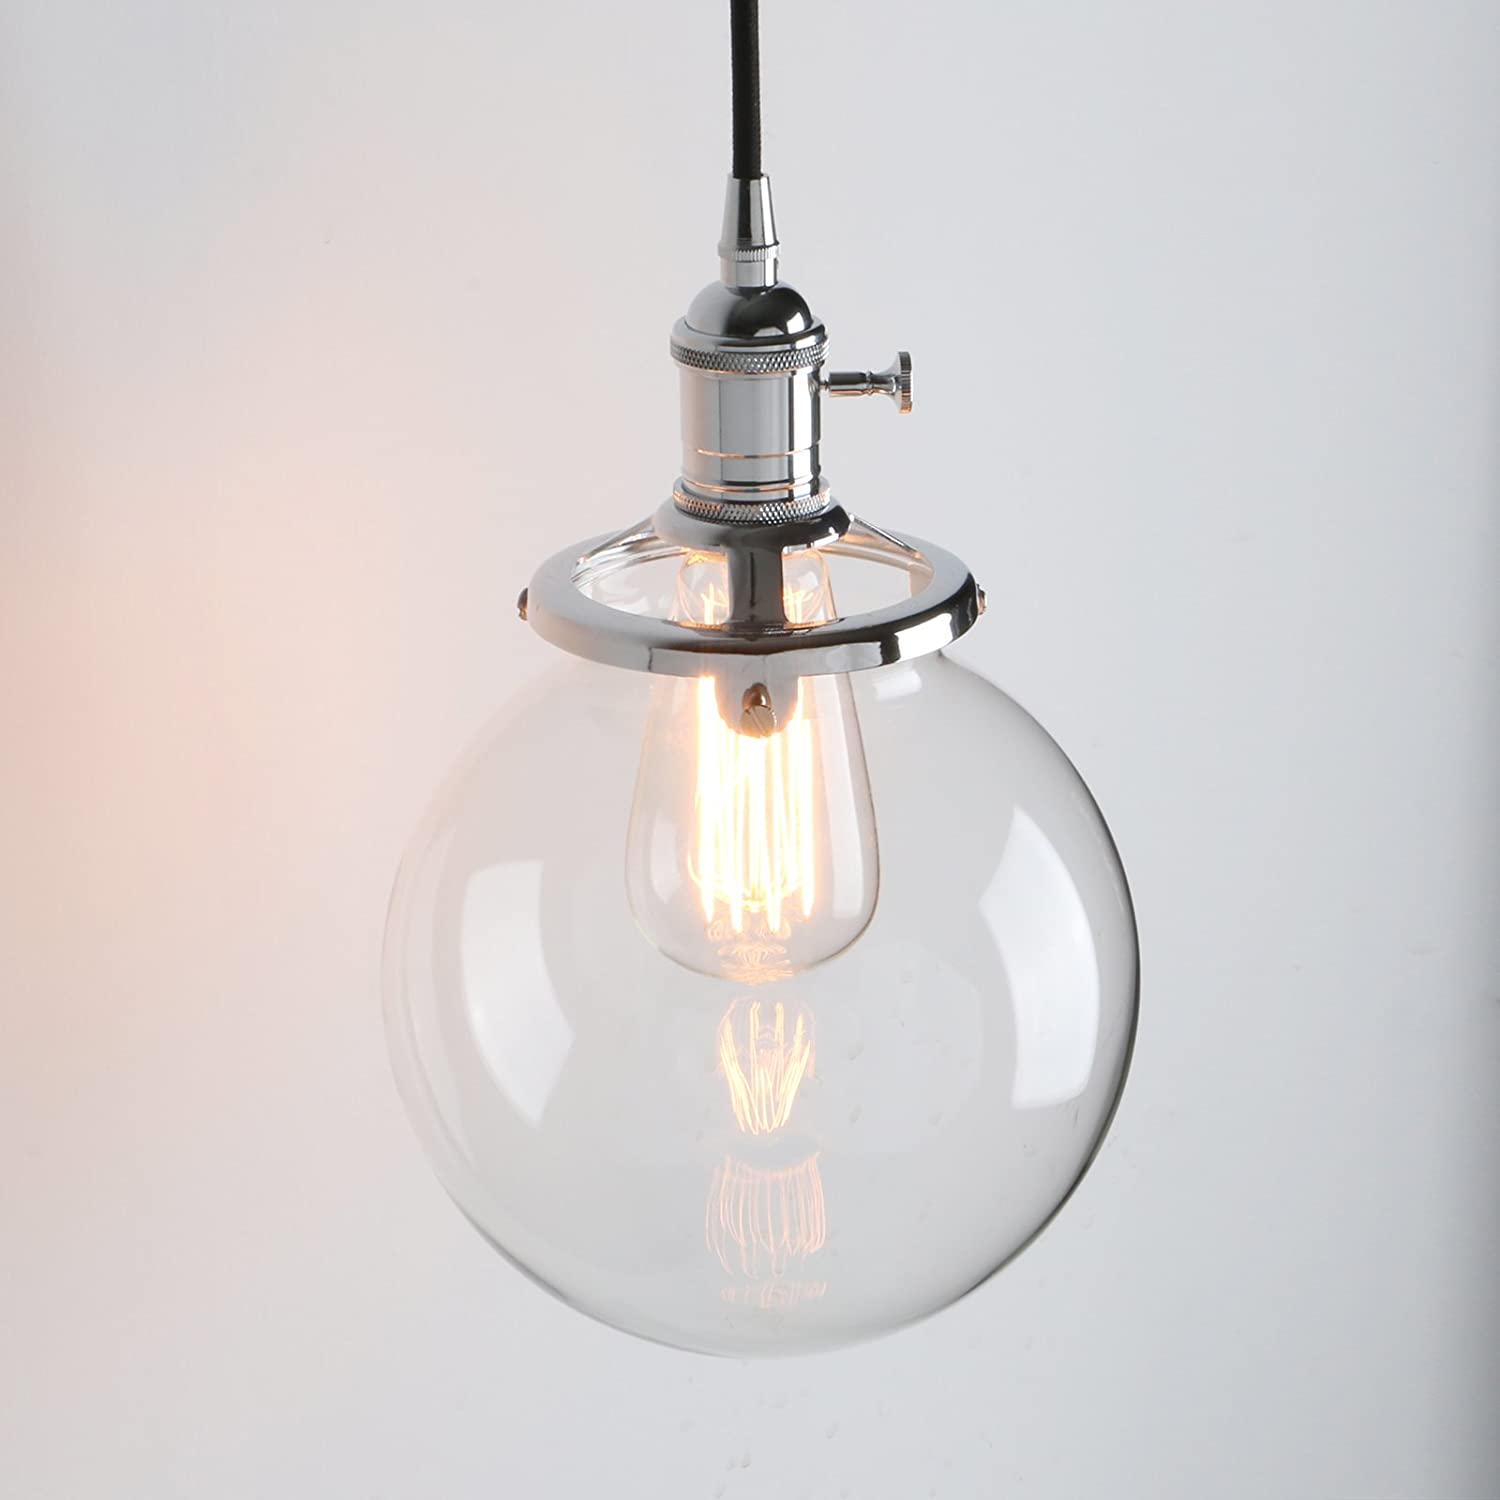 Pathson Industrial Modern Vintage Edison Hanging Light Fitting Pendant Ceiling Lights Lamp Fixture Chandelier With Clear Globe Glass Shade For Loft